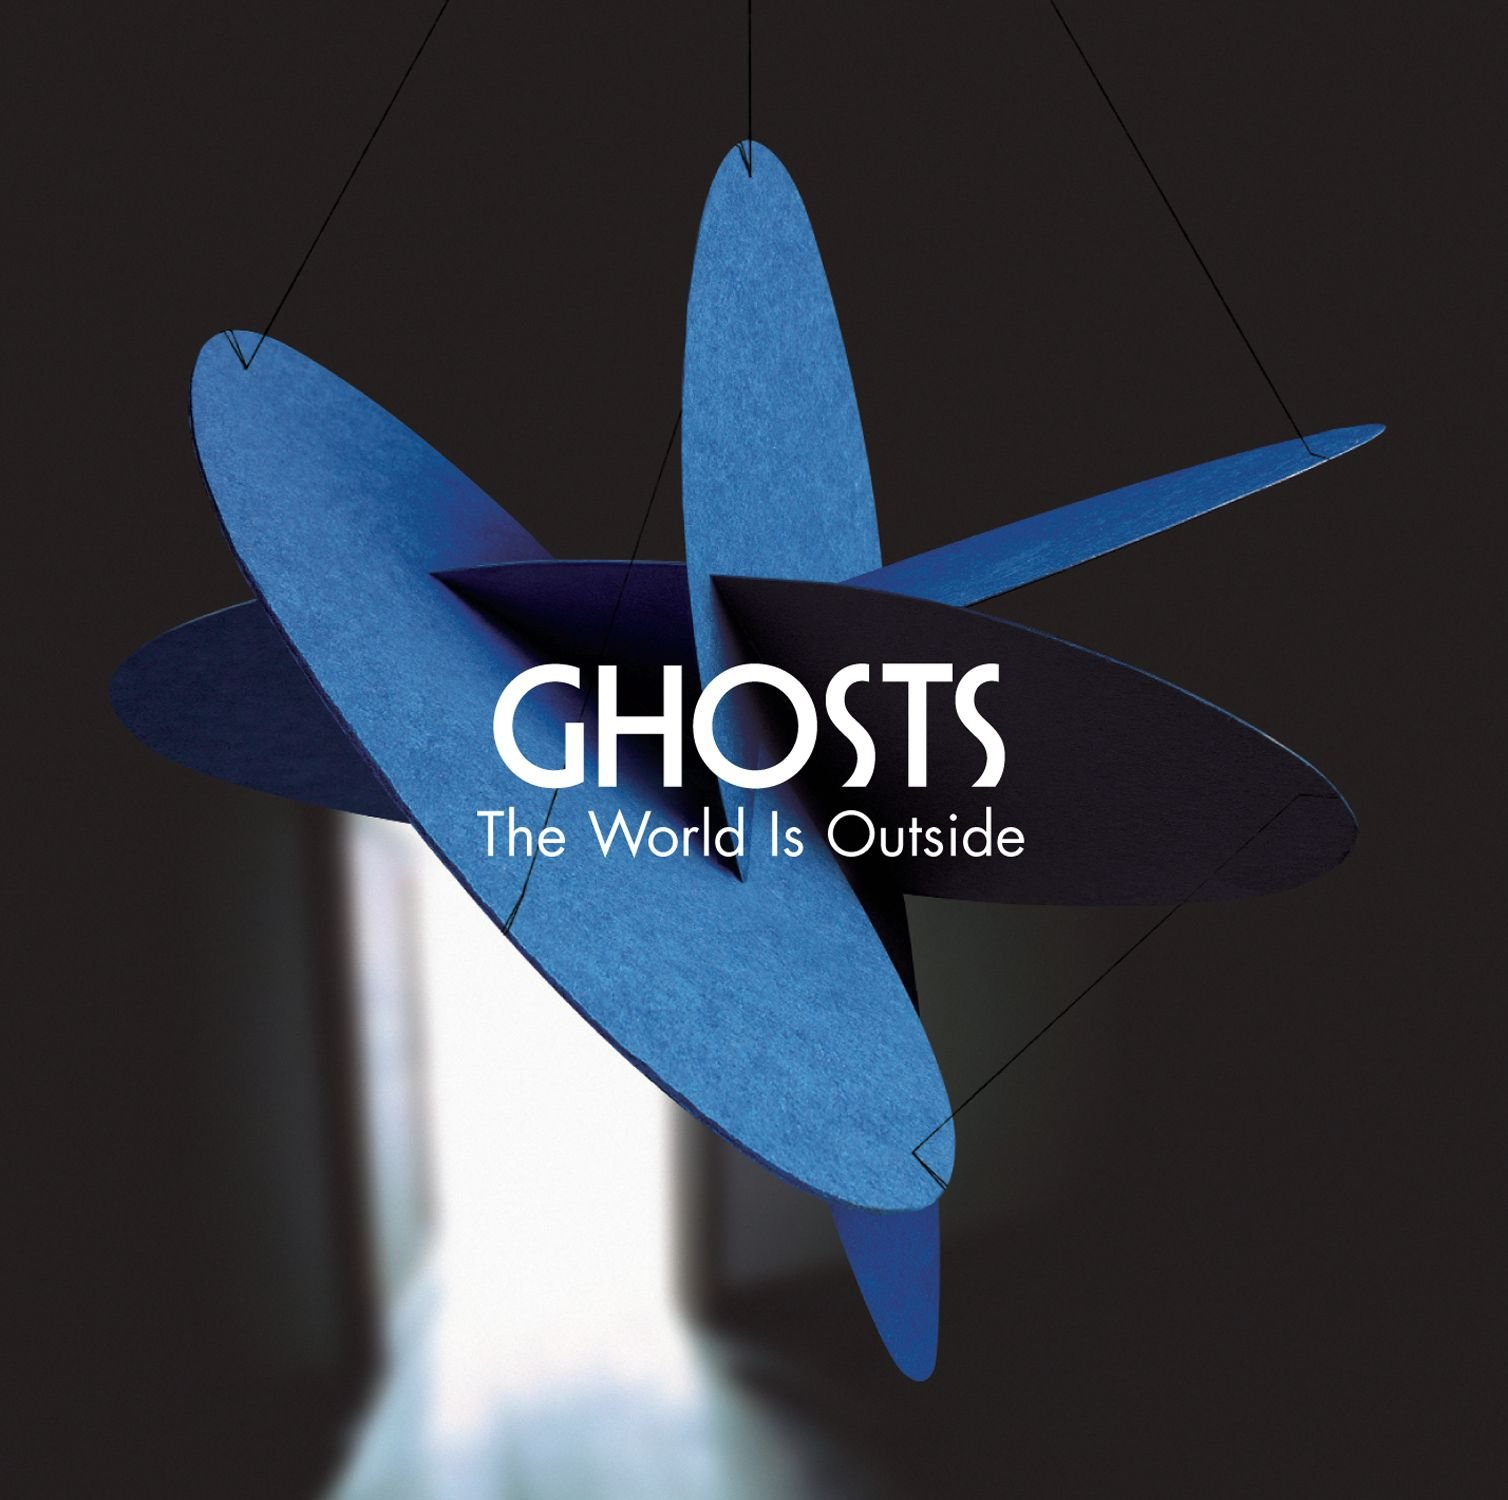 Ghosts 'The World is Outside'.